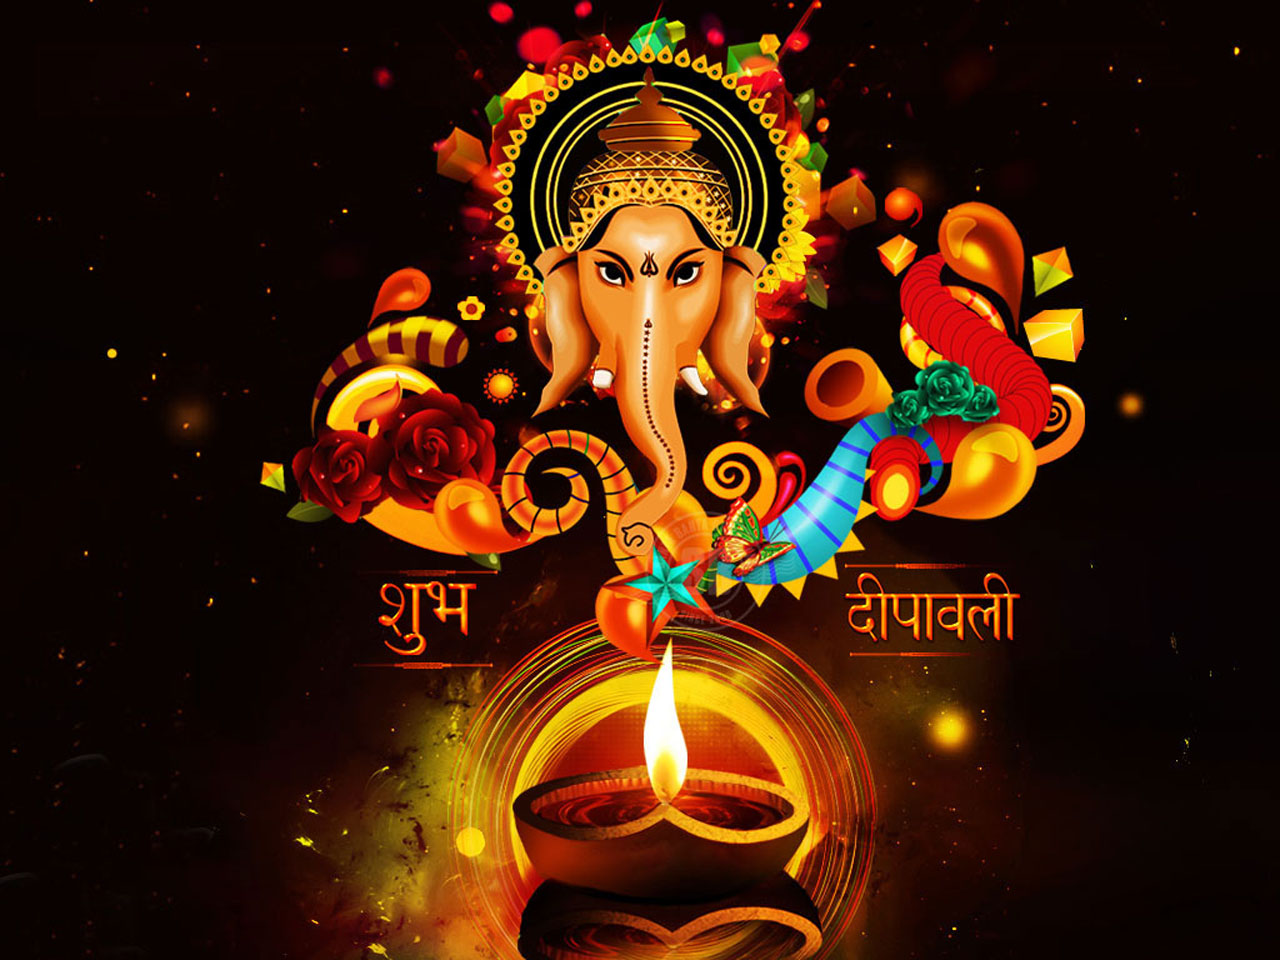 Shubh dipawali 2016 wallpapers